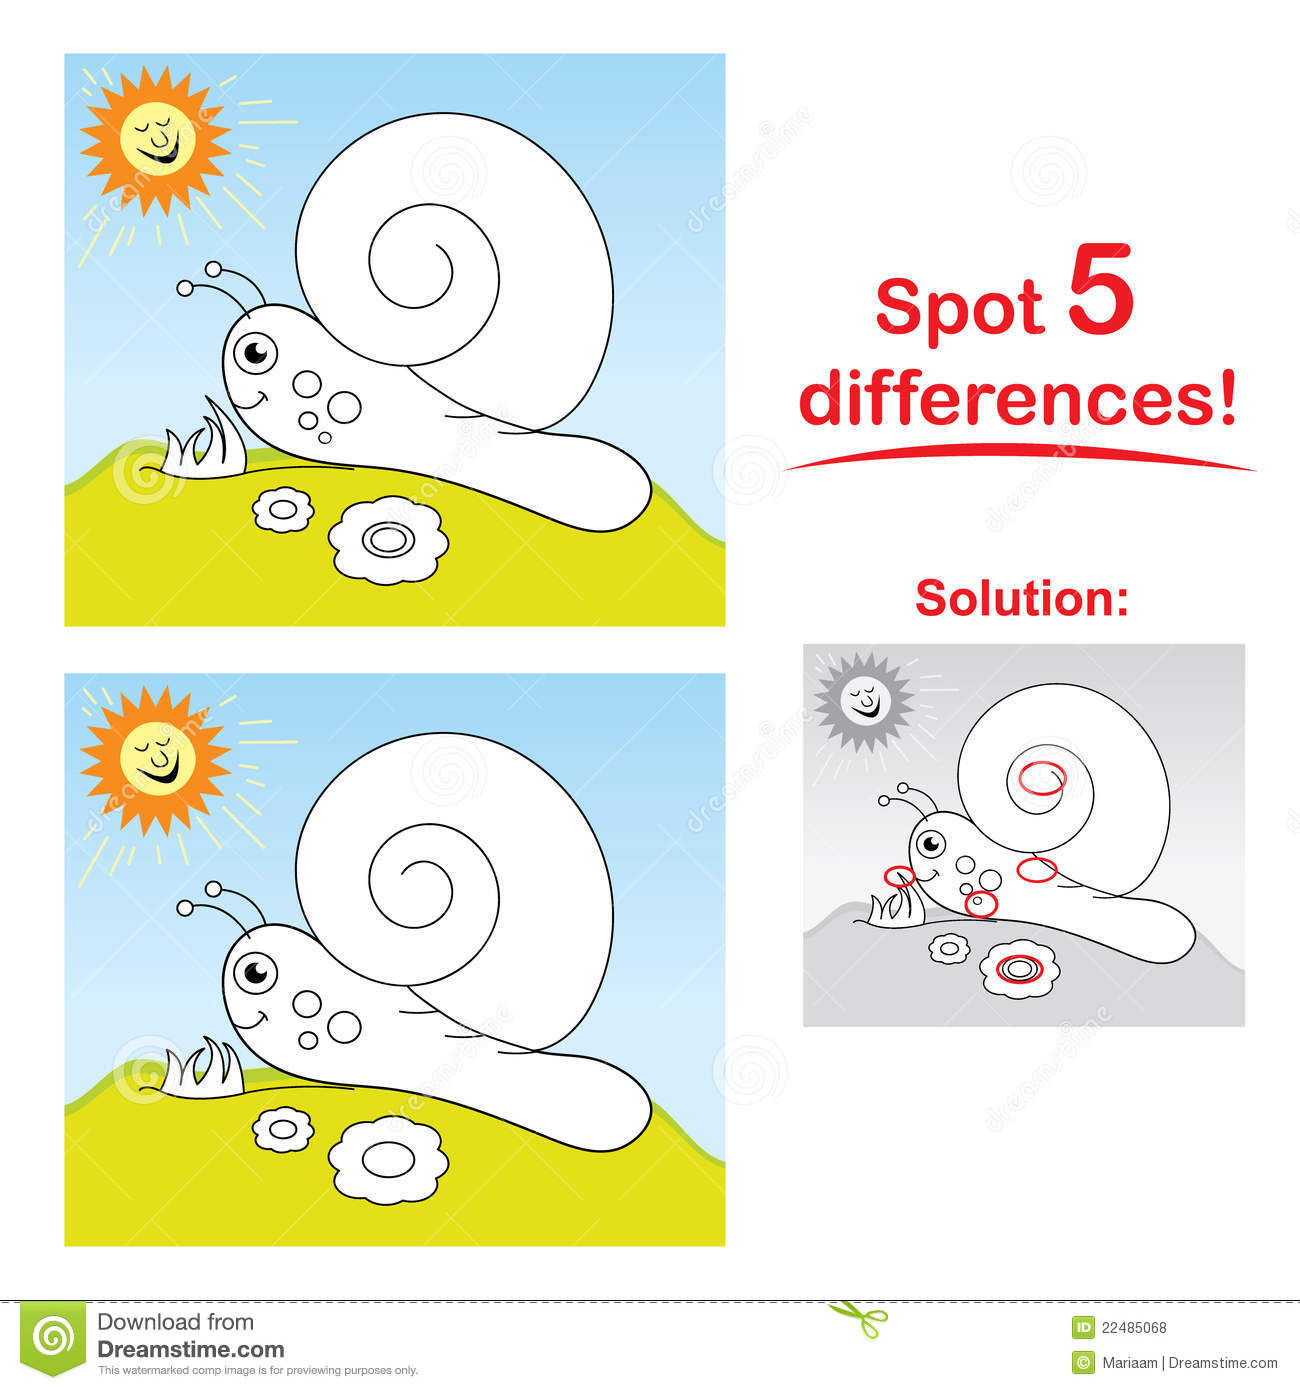 Concentration game for children: Spot 5 differences between the two ...